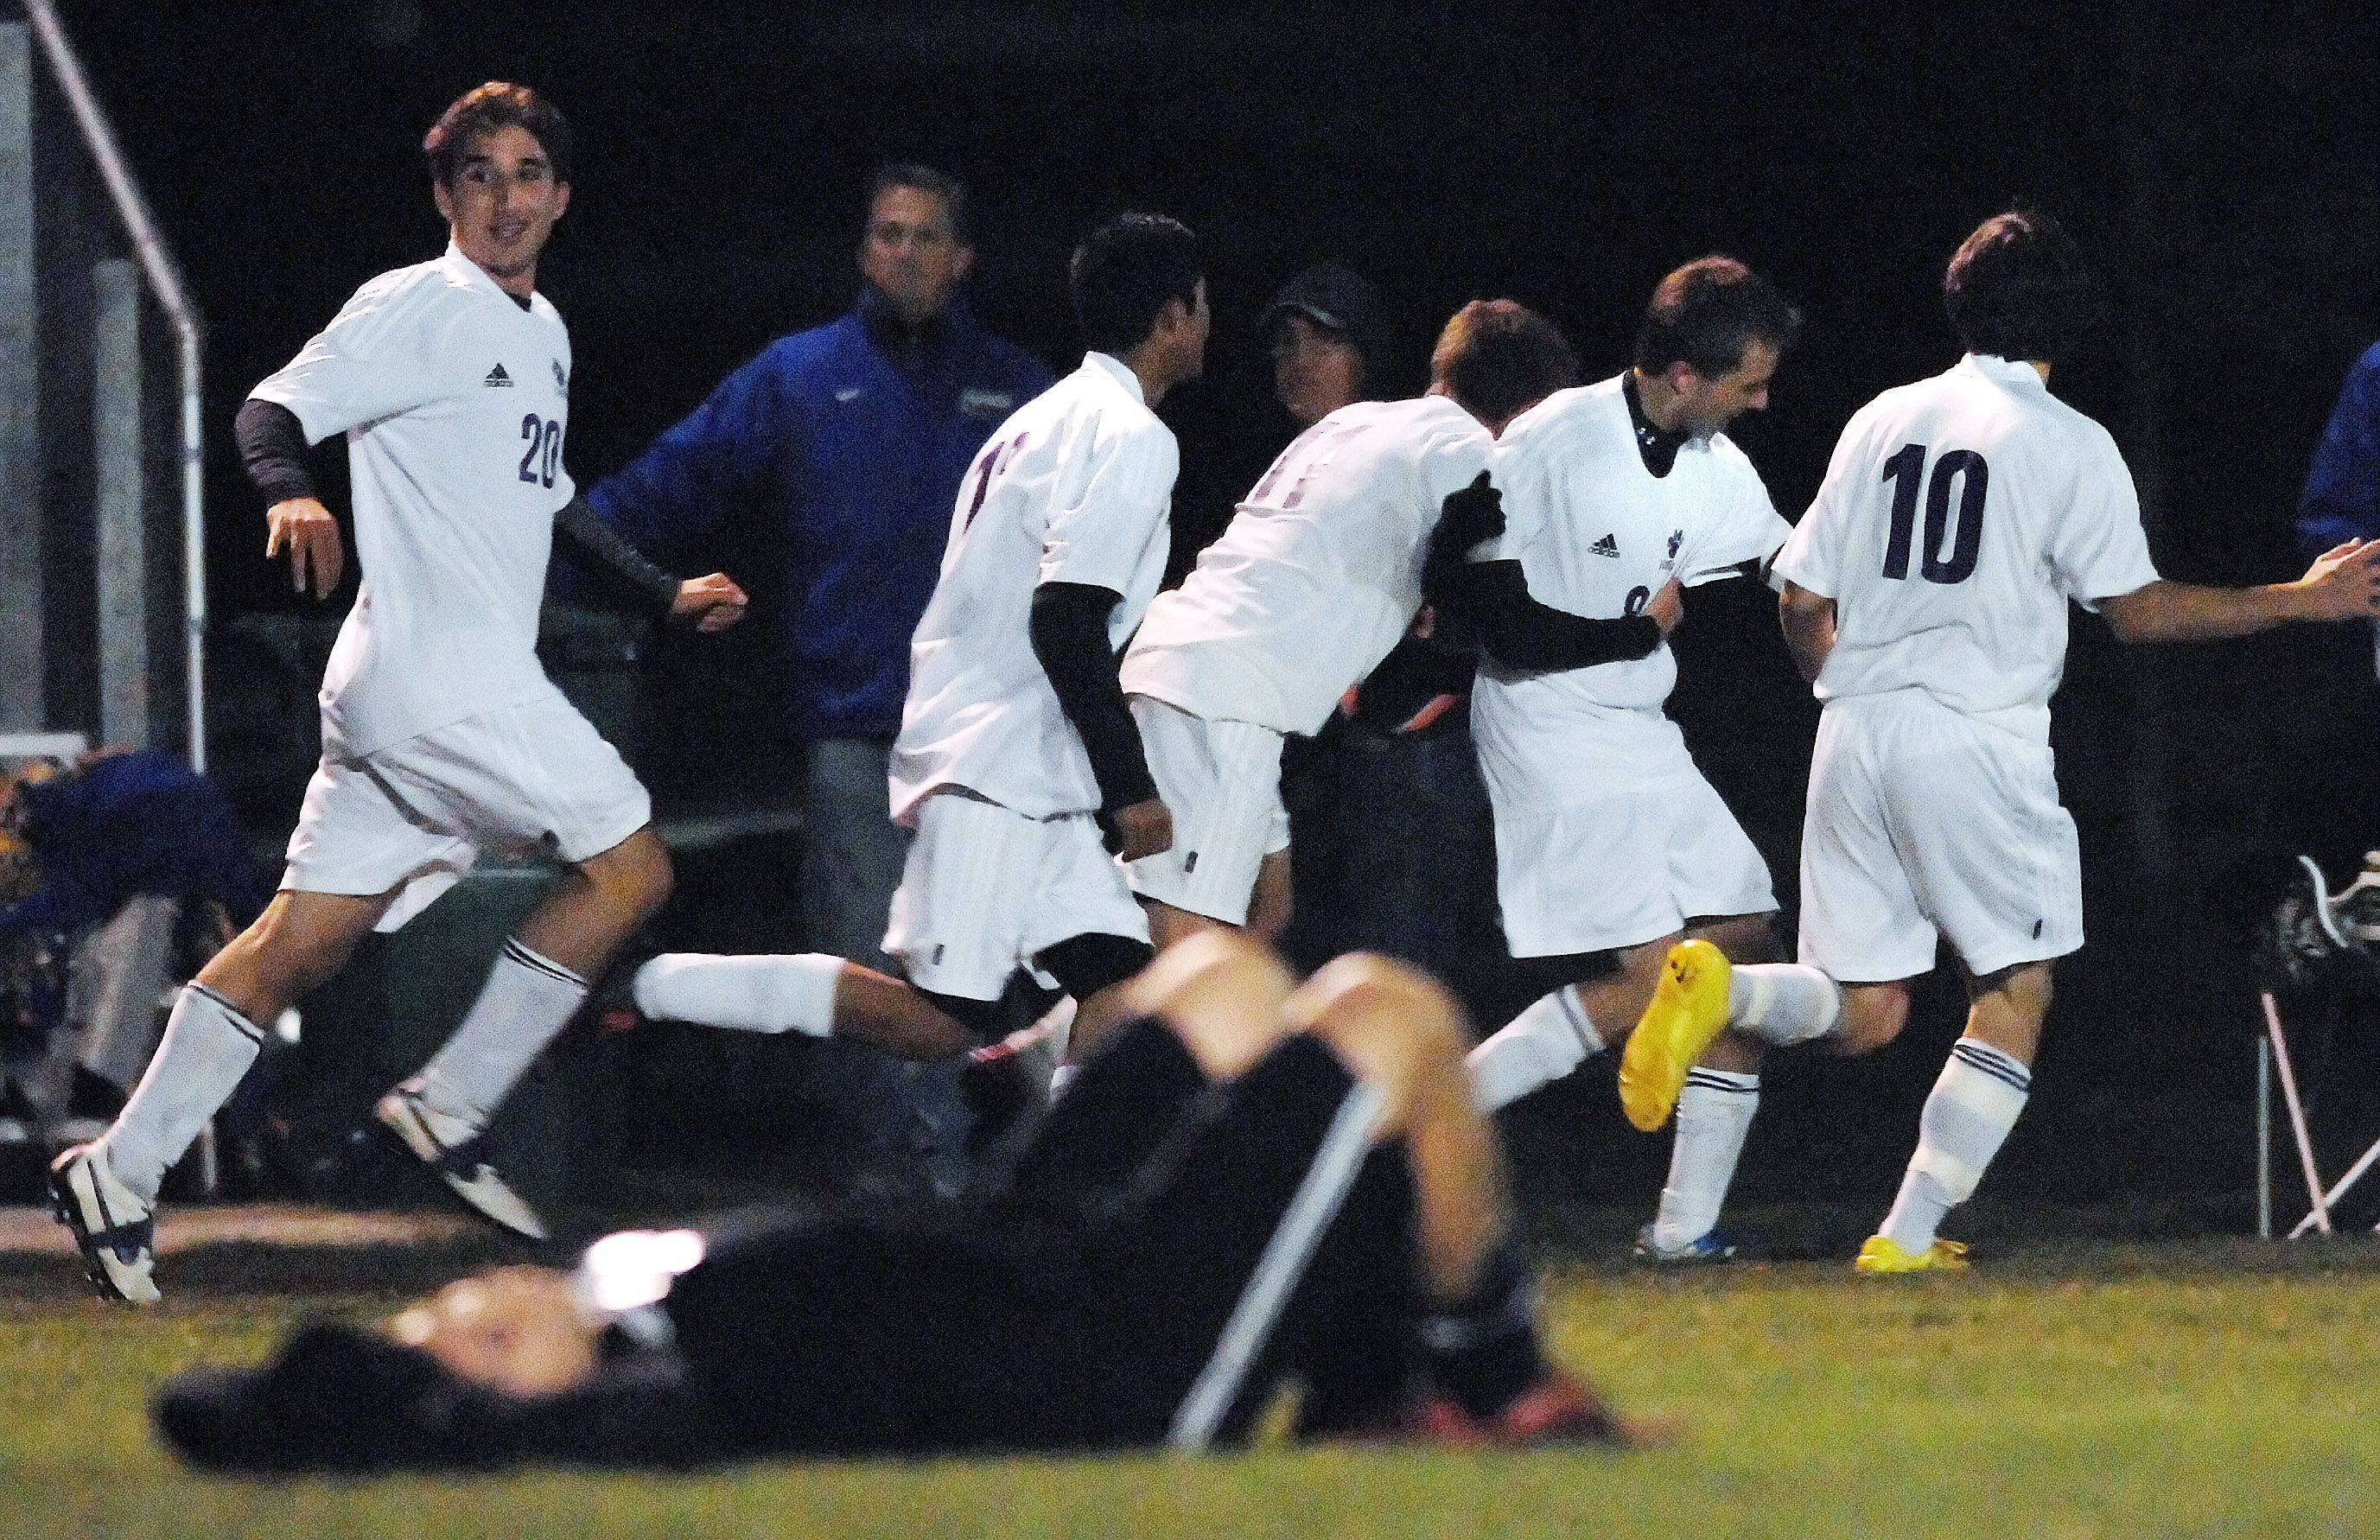 As a Prairie Ridge player lays on the field in defeat, Hampshire captain Jason Bishop is surrounded by teammates after he scored the winning goal with eight seconds left in overtime in the Hampshire regional game Tuesday.